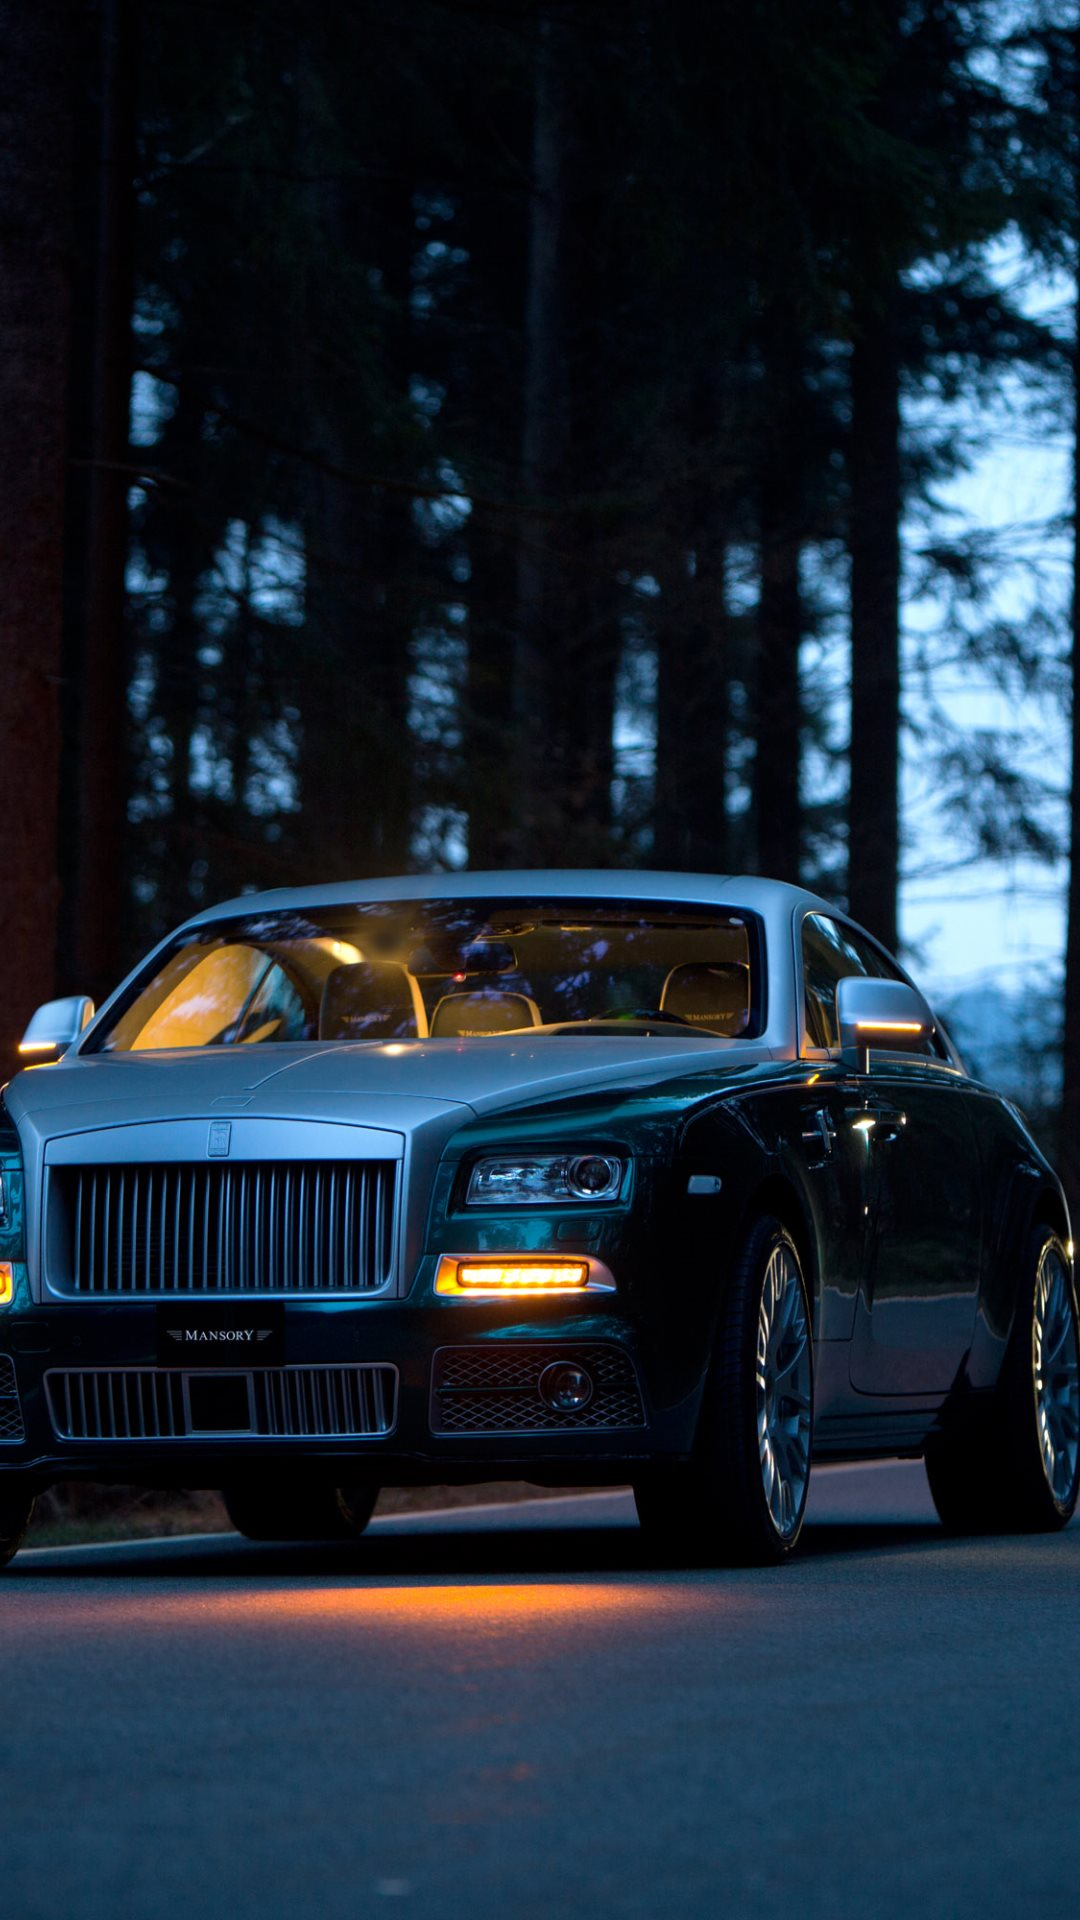 Wallpapers Of A Rolls Royce Wraith Wallpaper - Prices ...